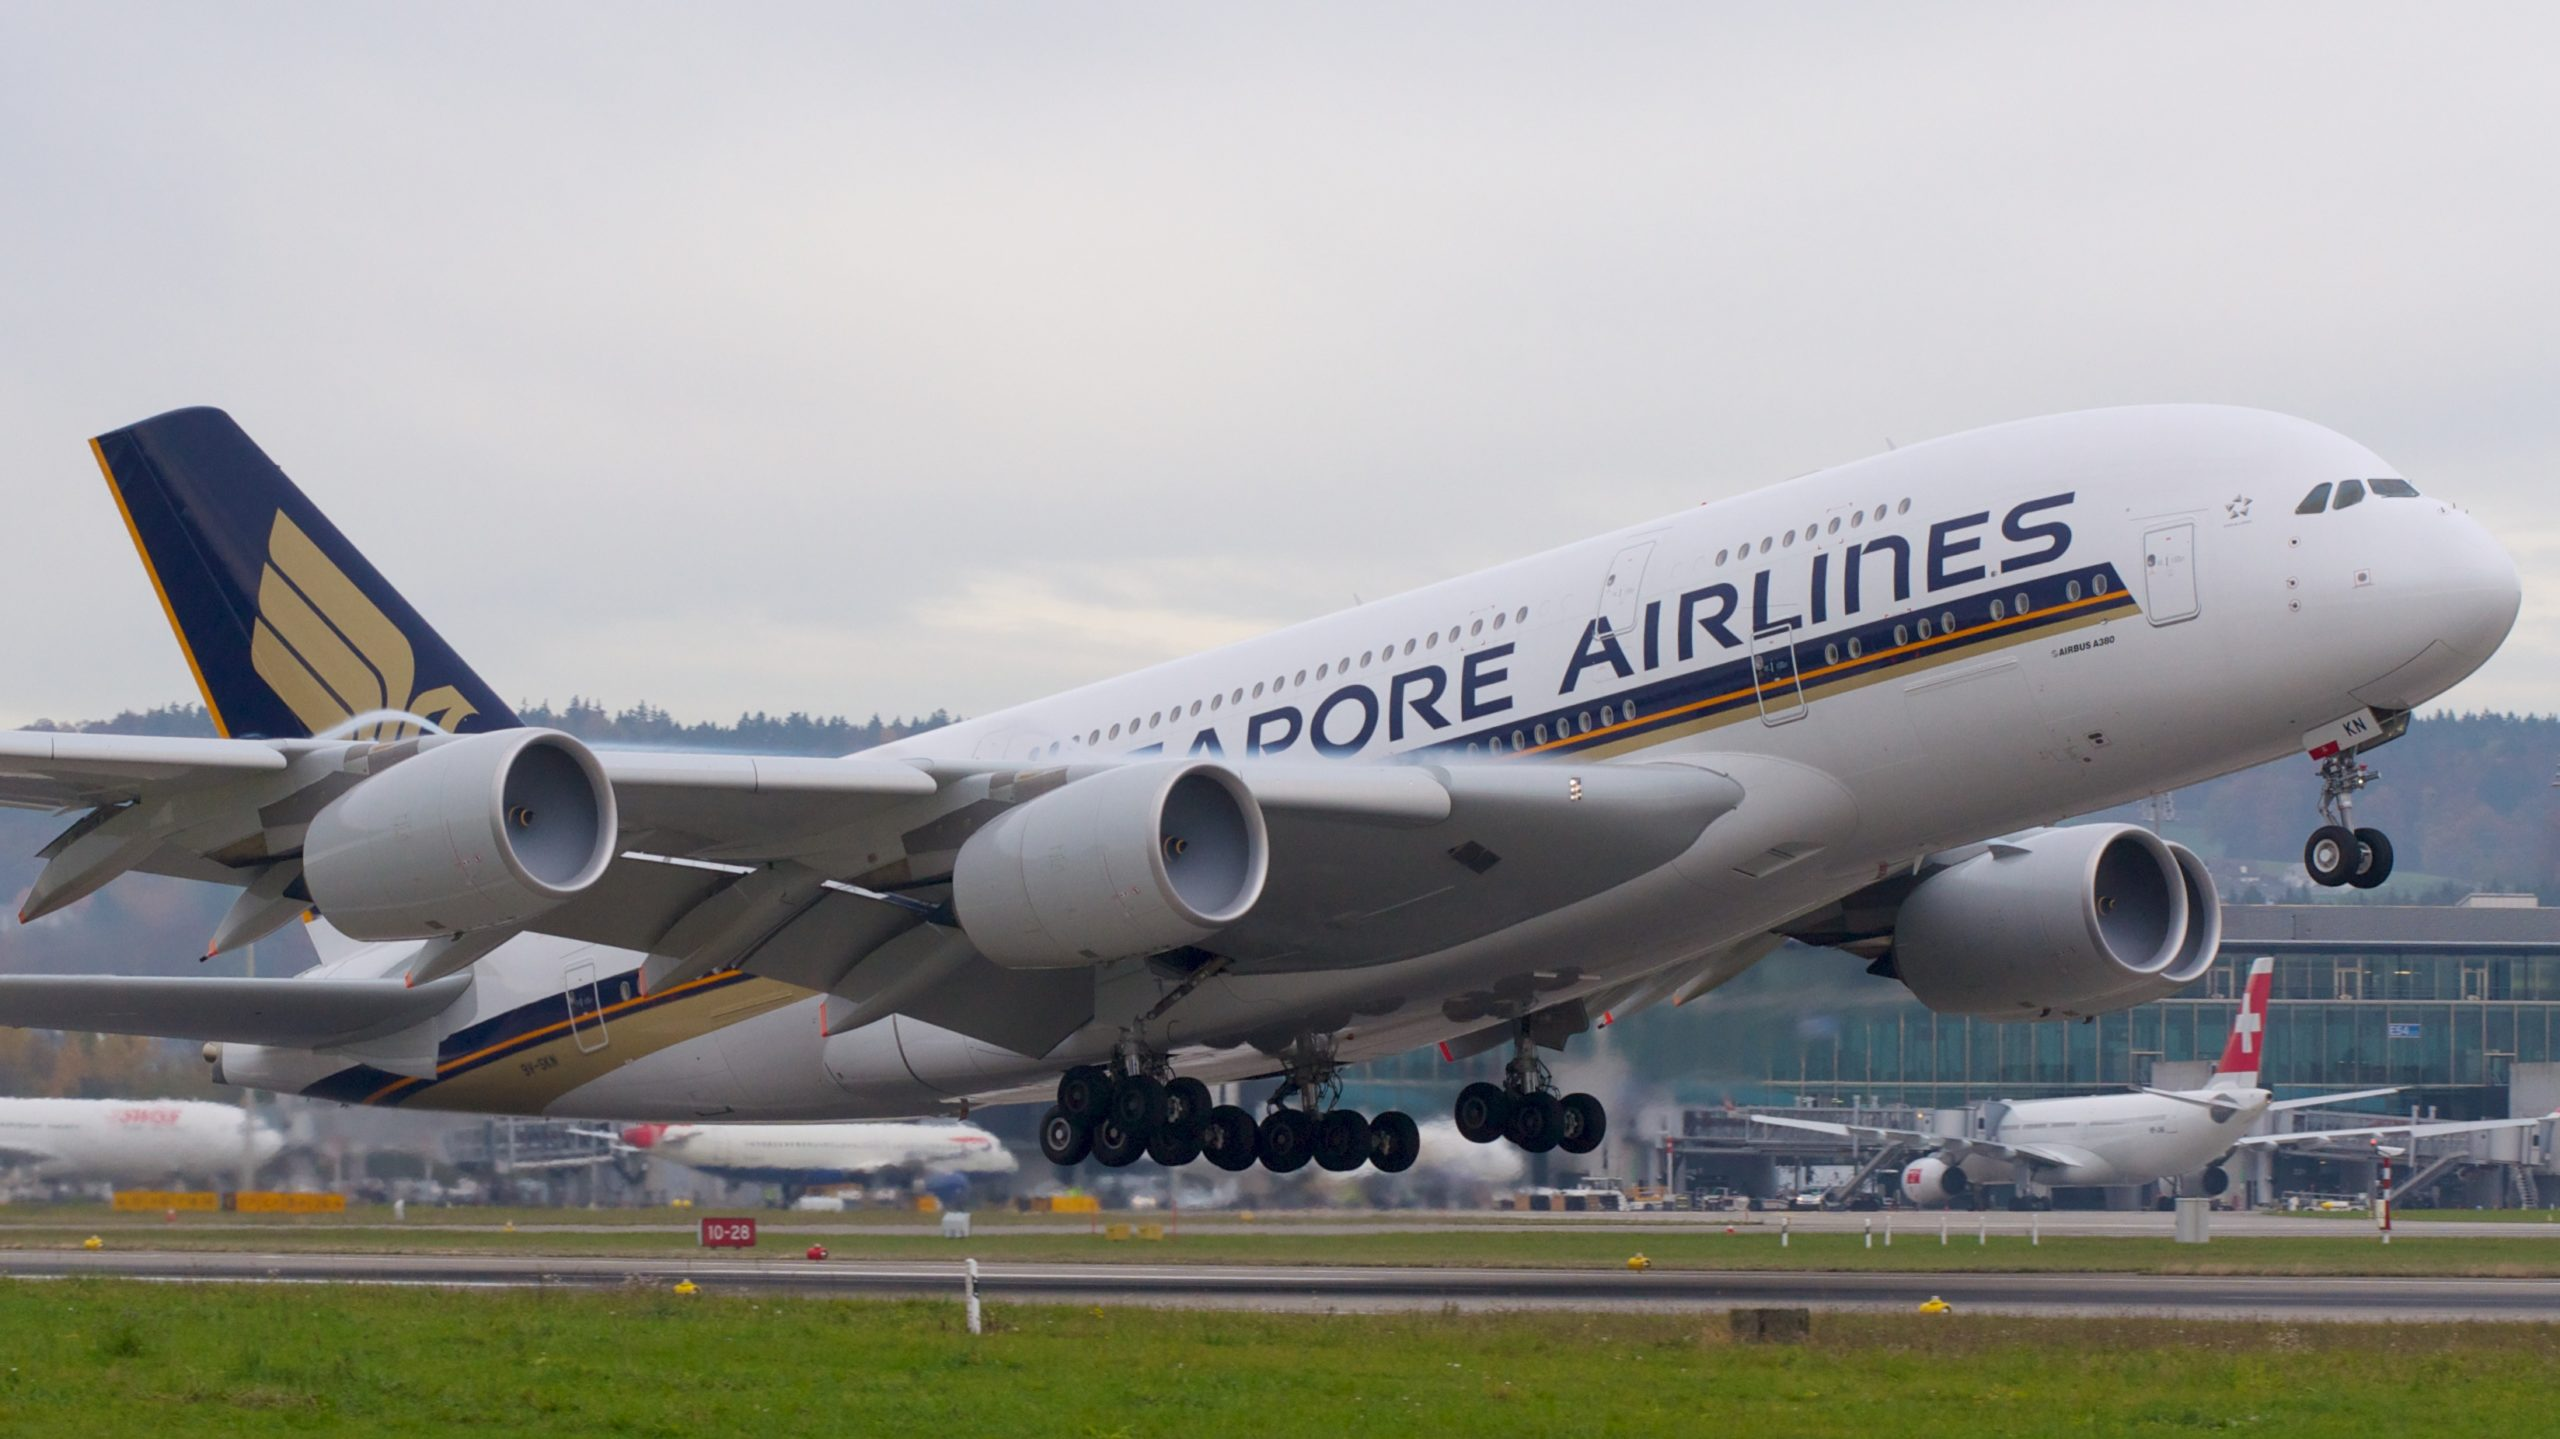 Singapore Airlines Airbus_A380-800 9V-SKN takes off from Zurich.